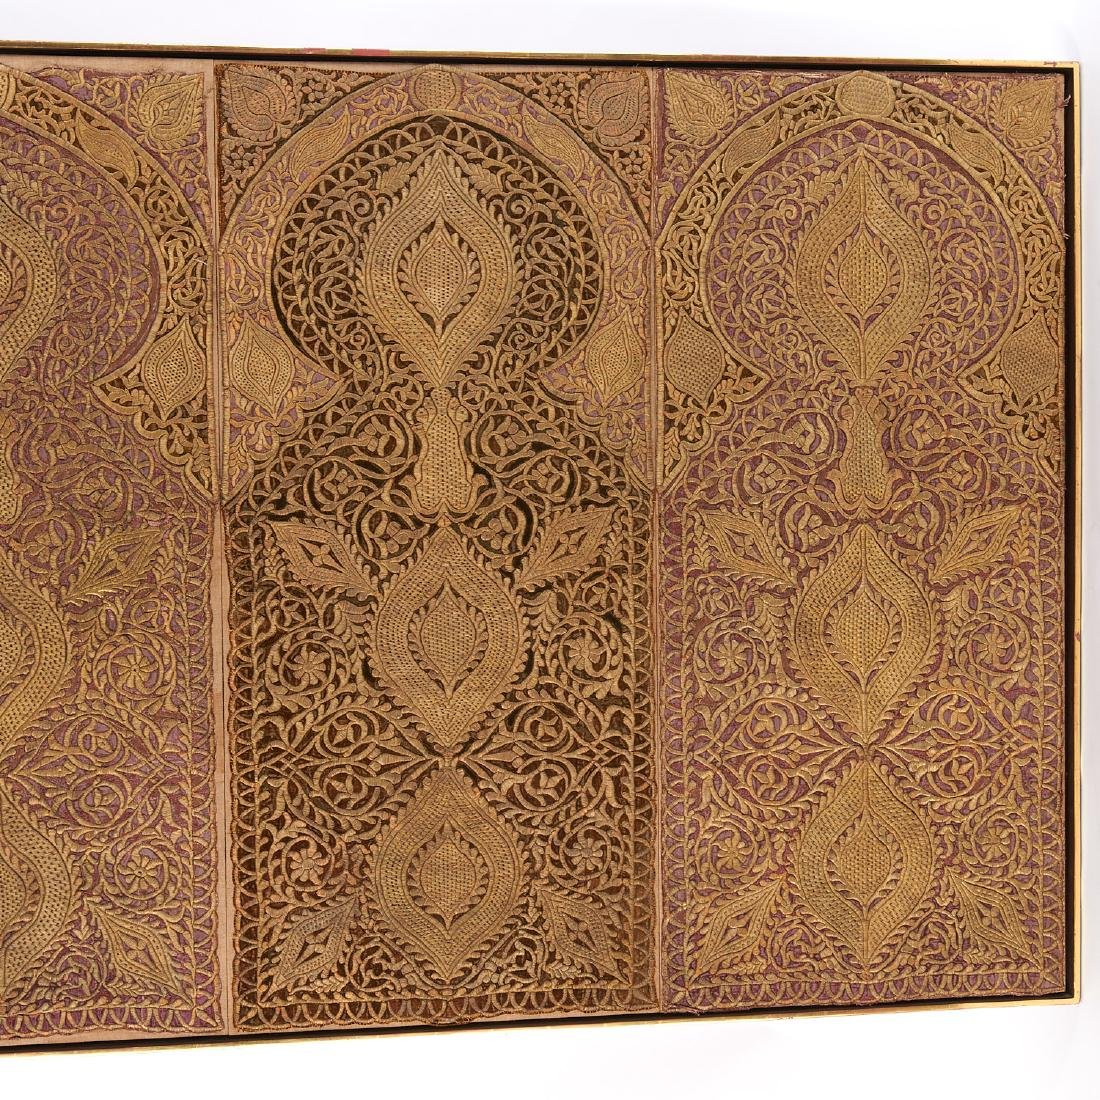 Large Mughal silk and metal threaded tapestry - 3